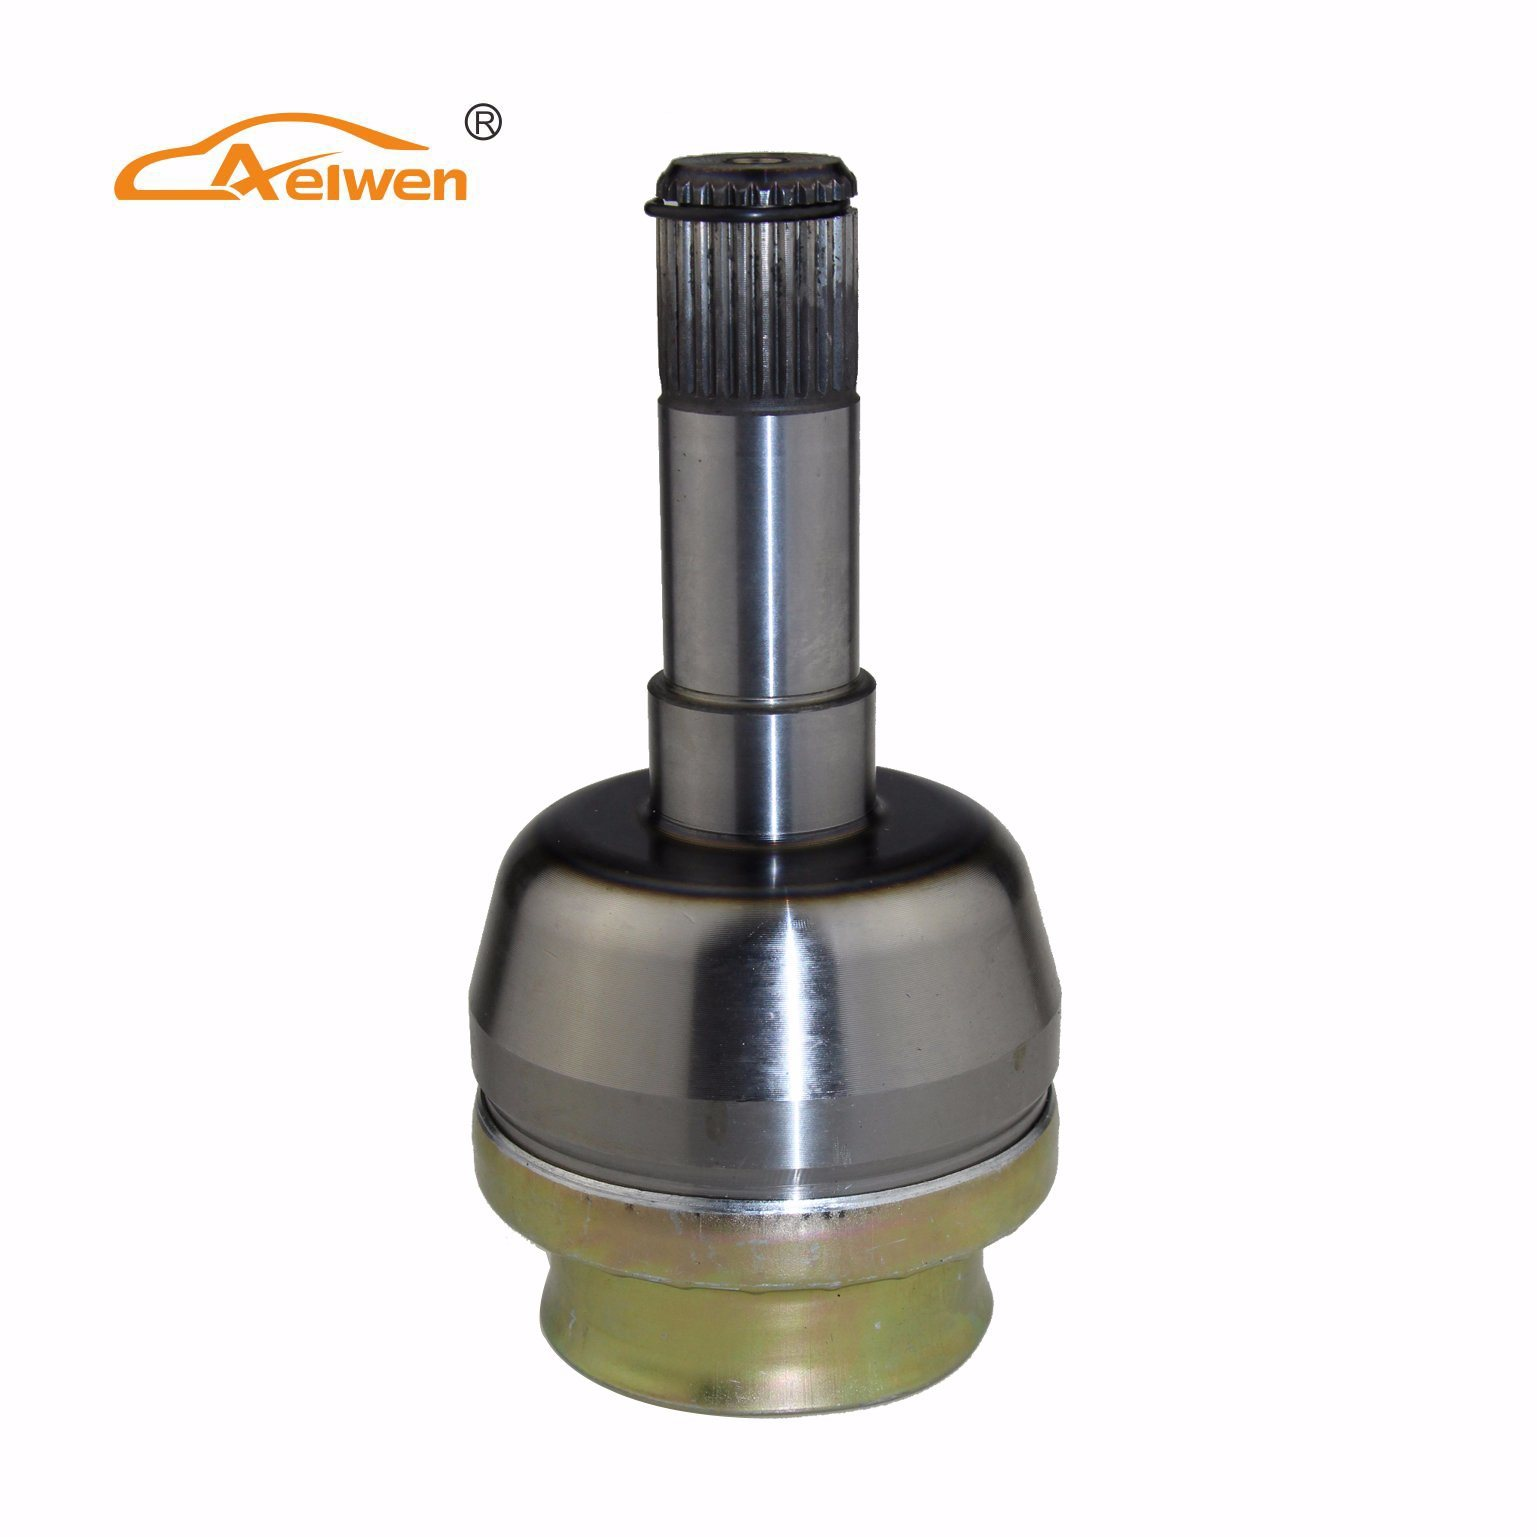 [Hot Item] Auto Spare Parts Inner CV Joint for Opel Vectra C Caravan  (13166587, 374470, 374536, 9186550) 27th-28th Inside